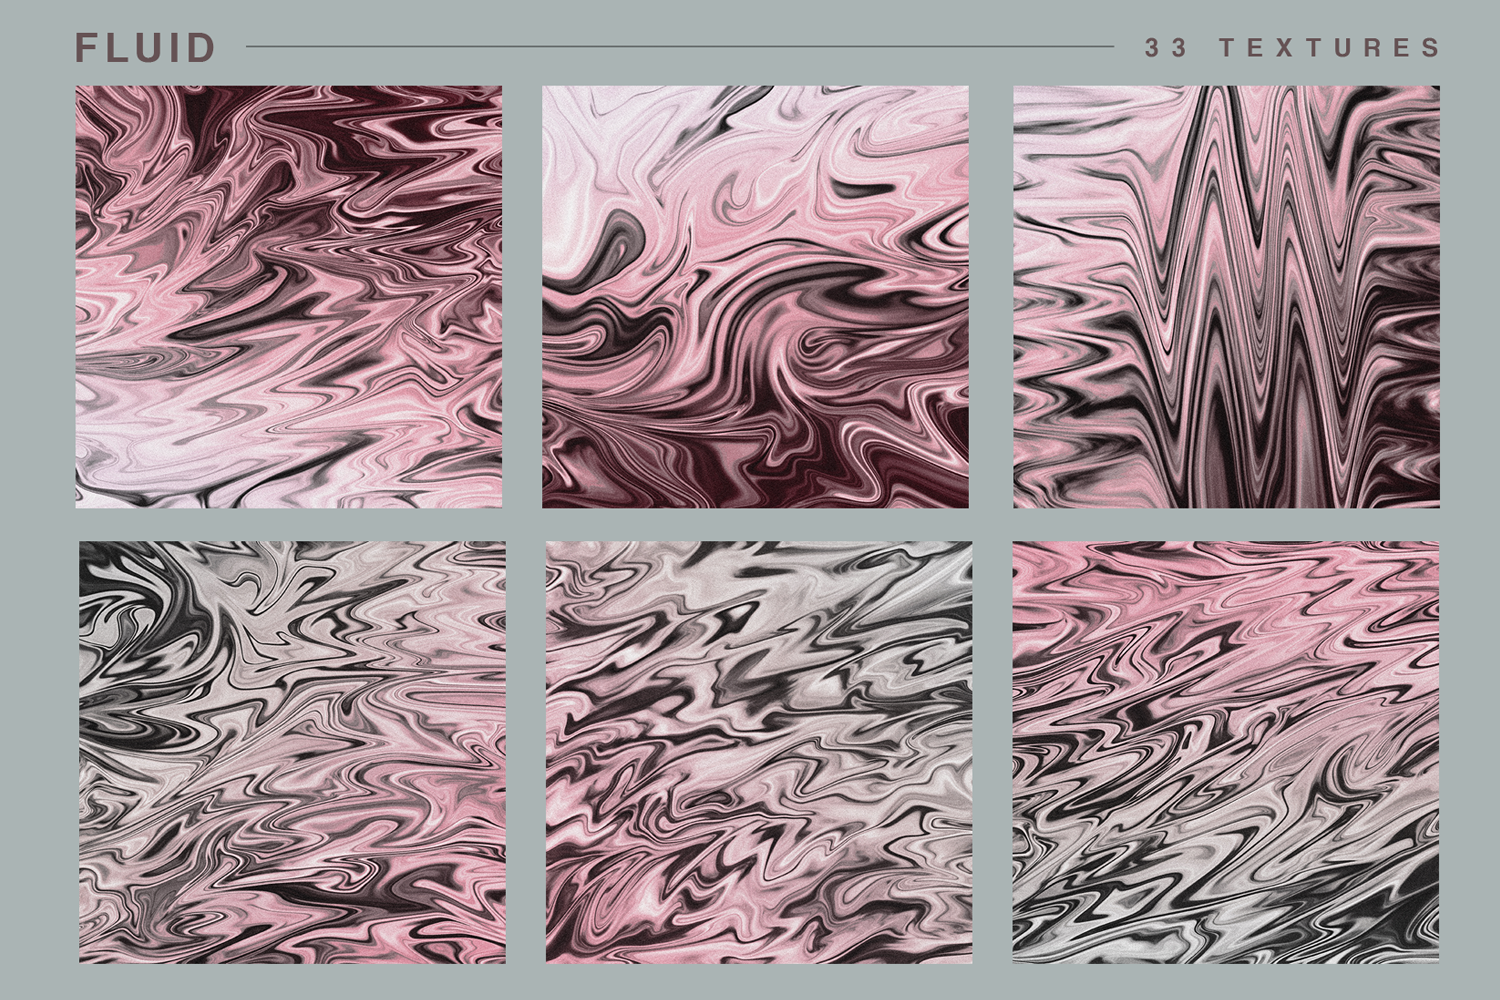 Fluid textures marble metallic rose